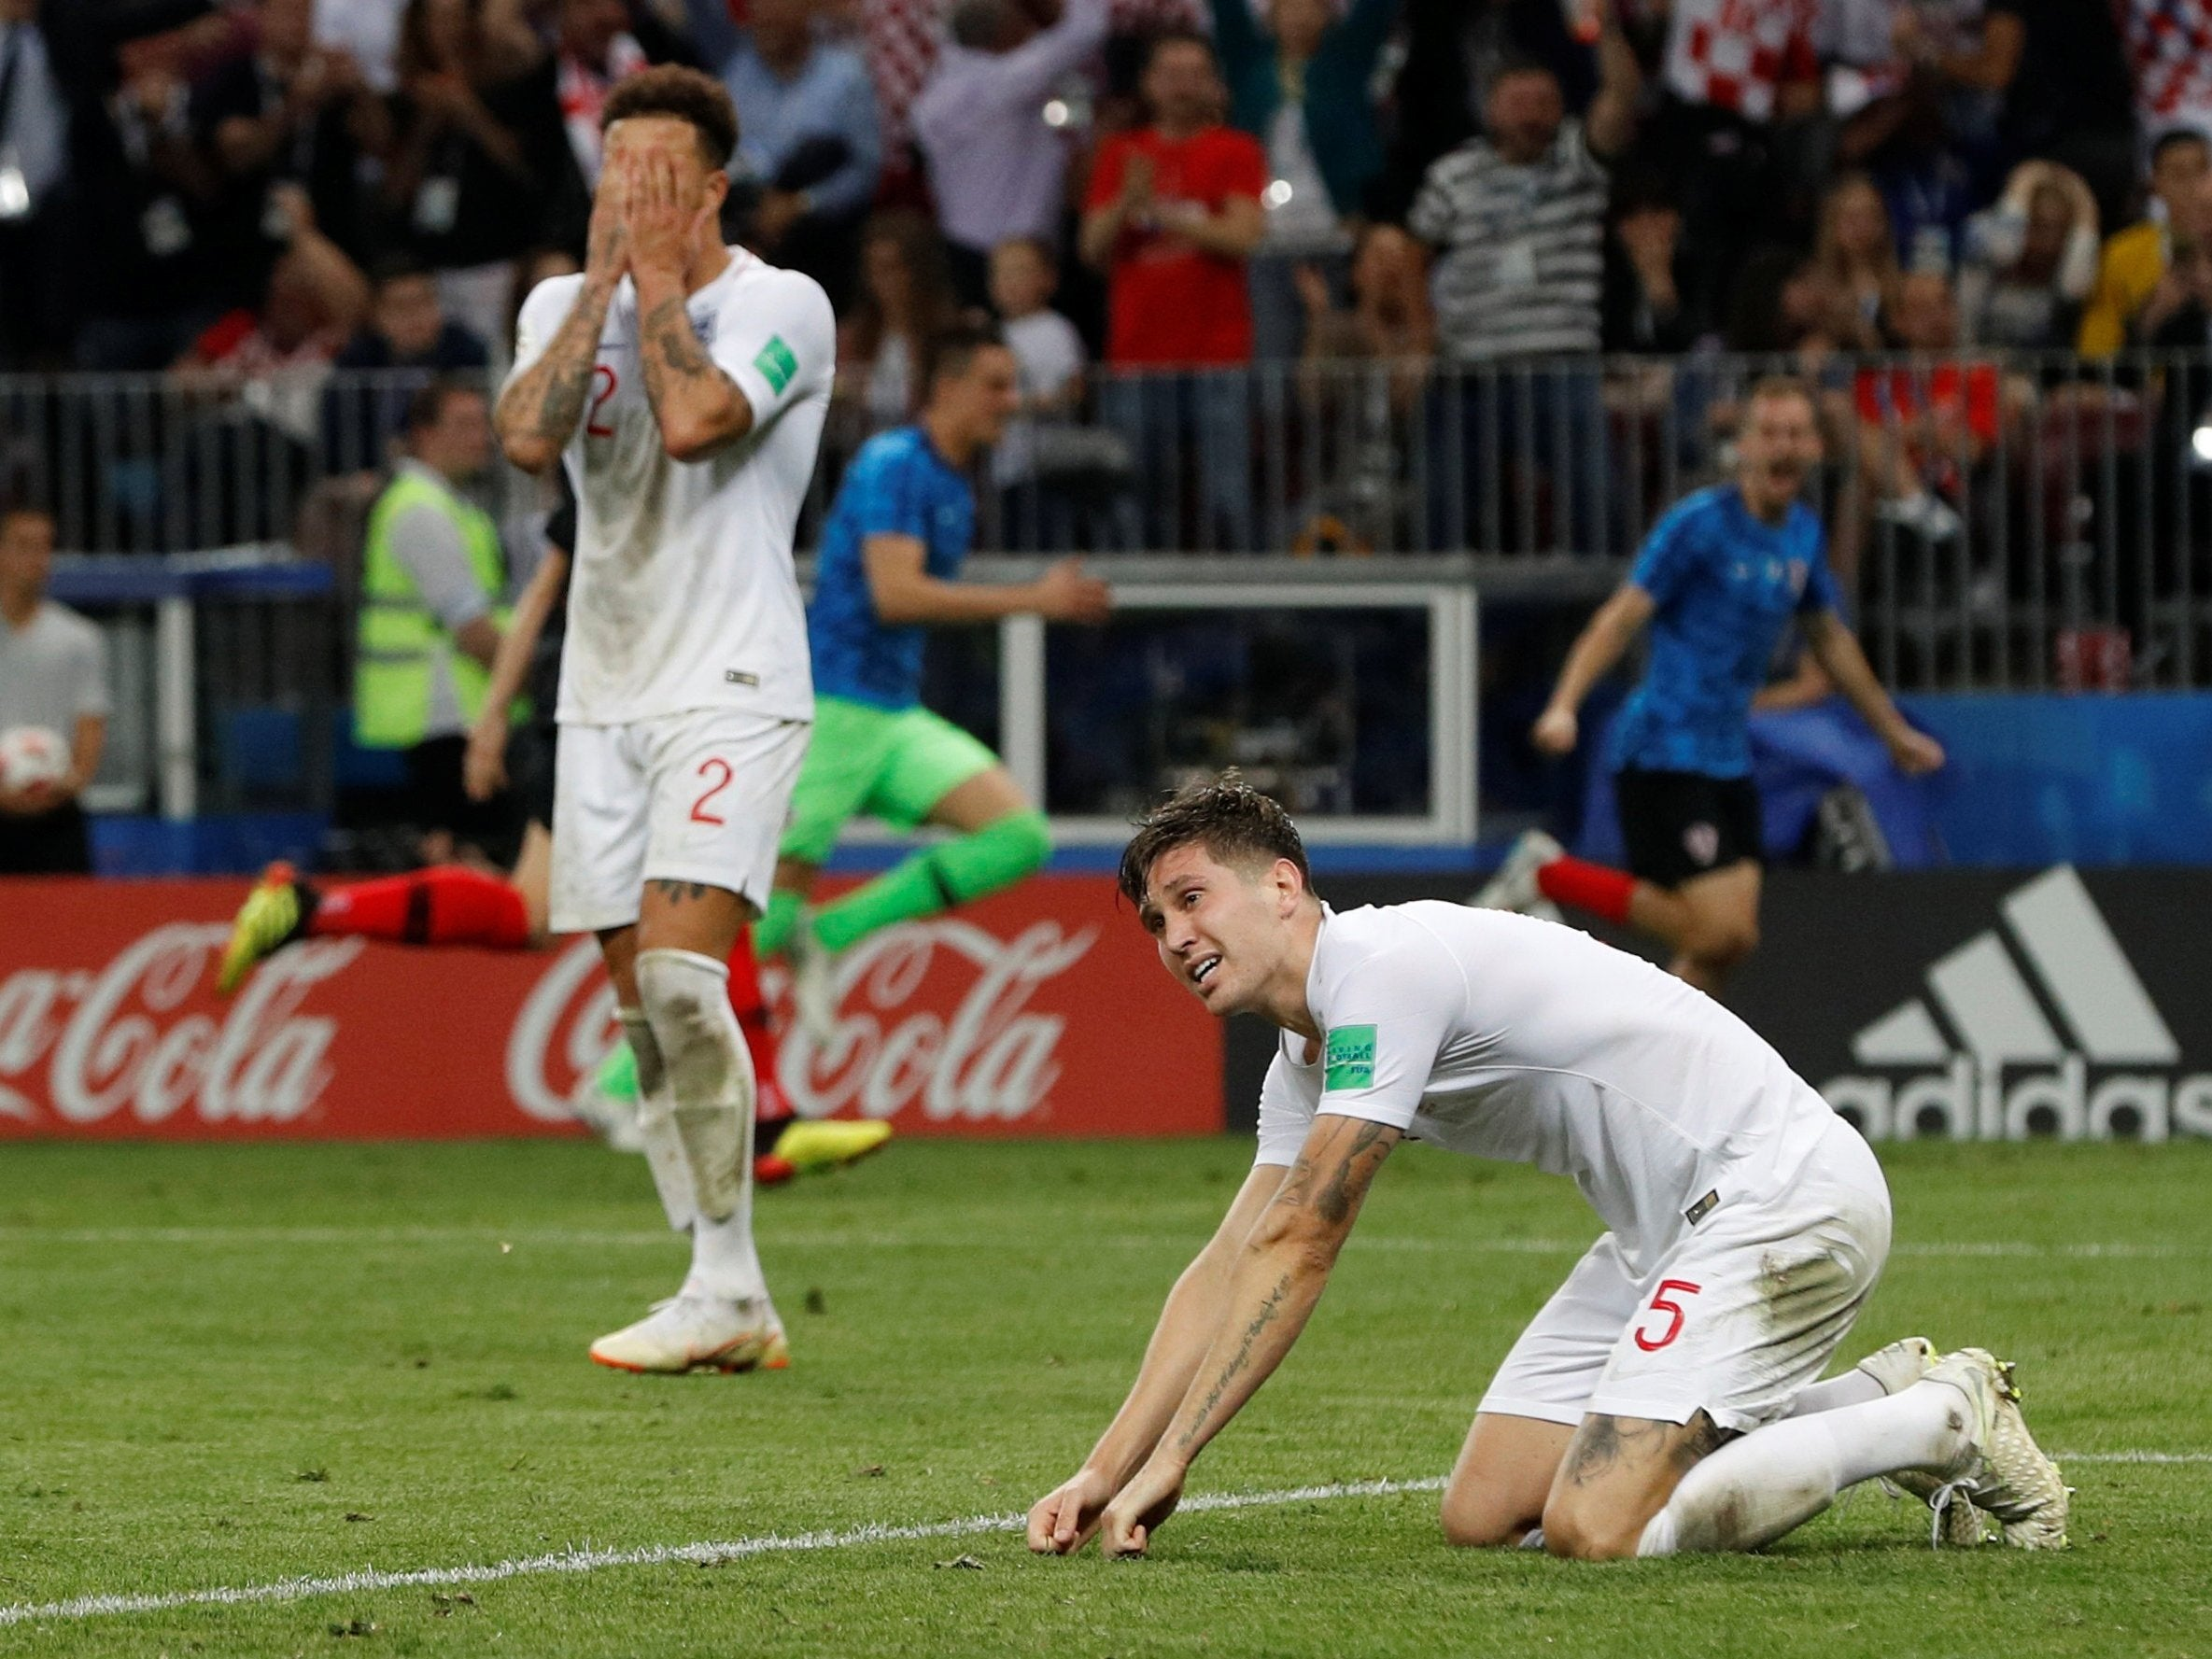 England 1-2 Croatia: Three lions come out of the world championship in a heartbreaking semifinal 60